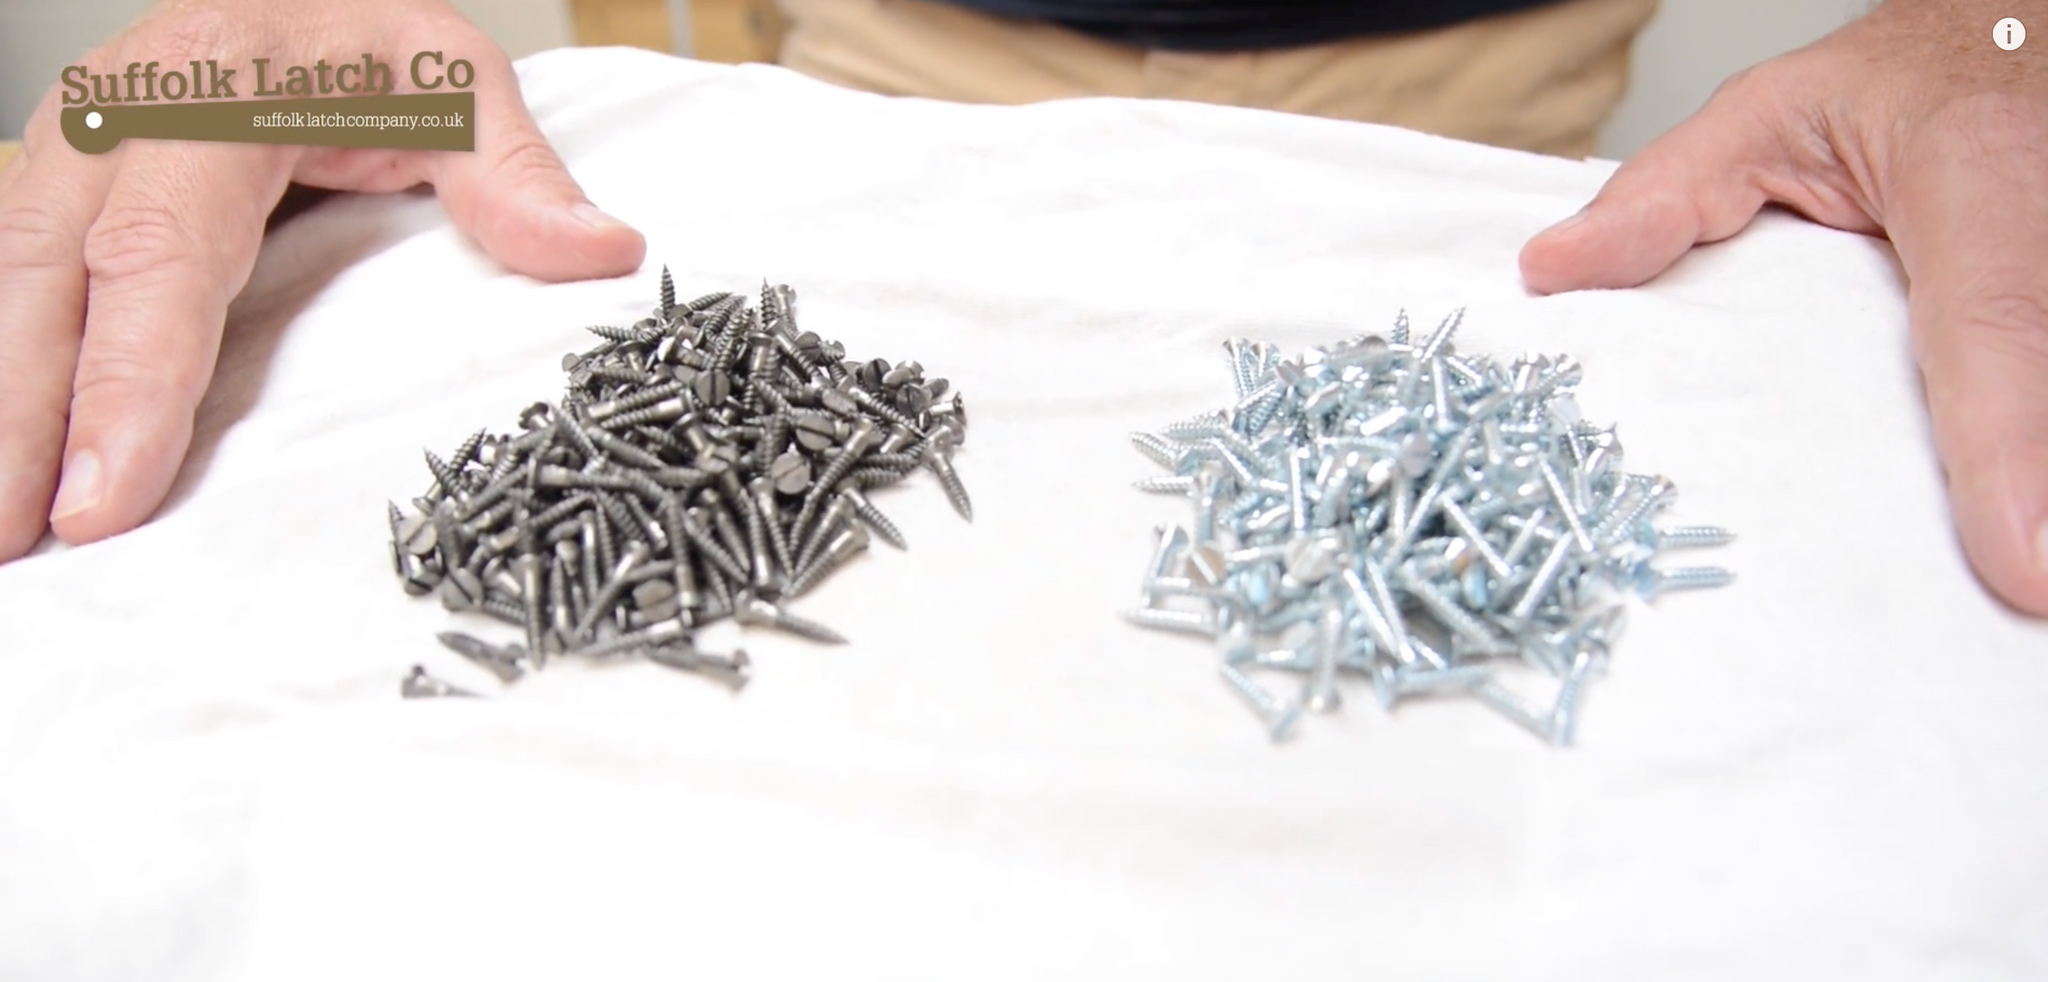 How to Strip Zinc Plating from Screws